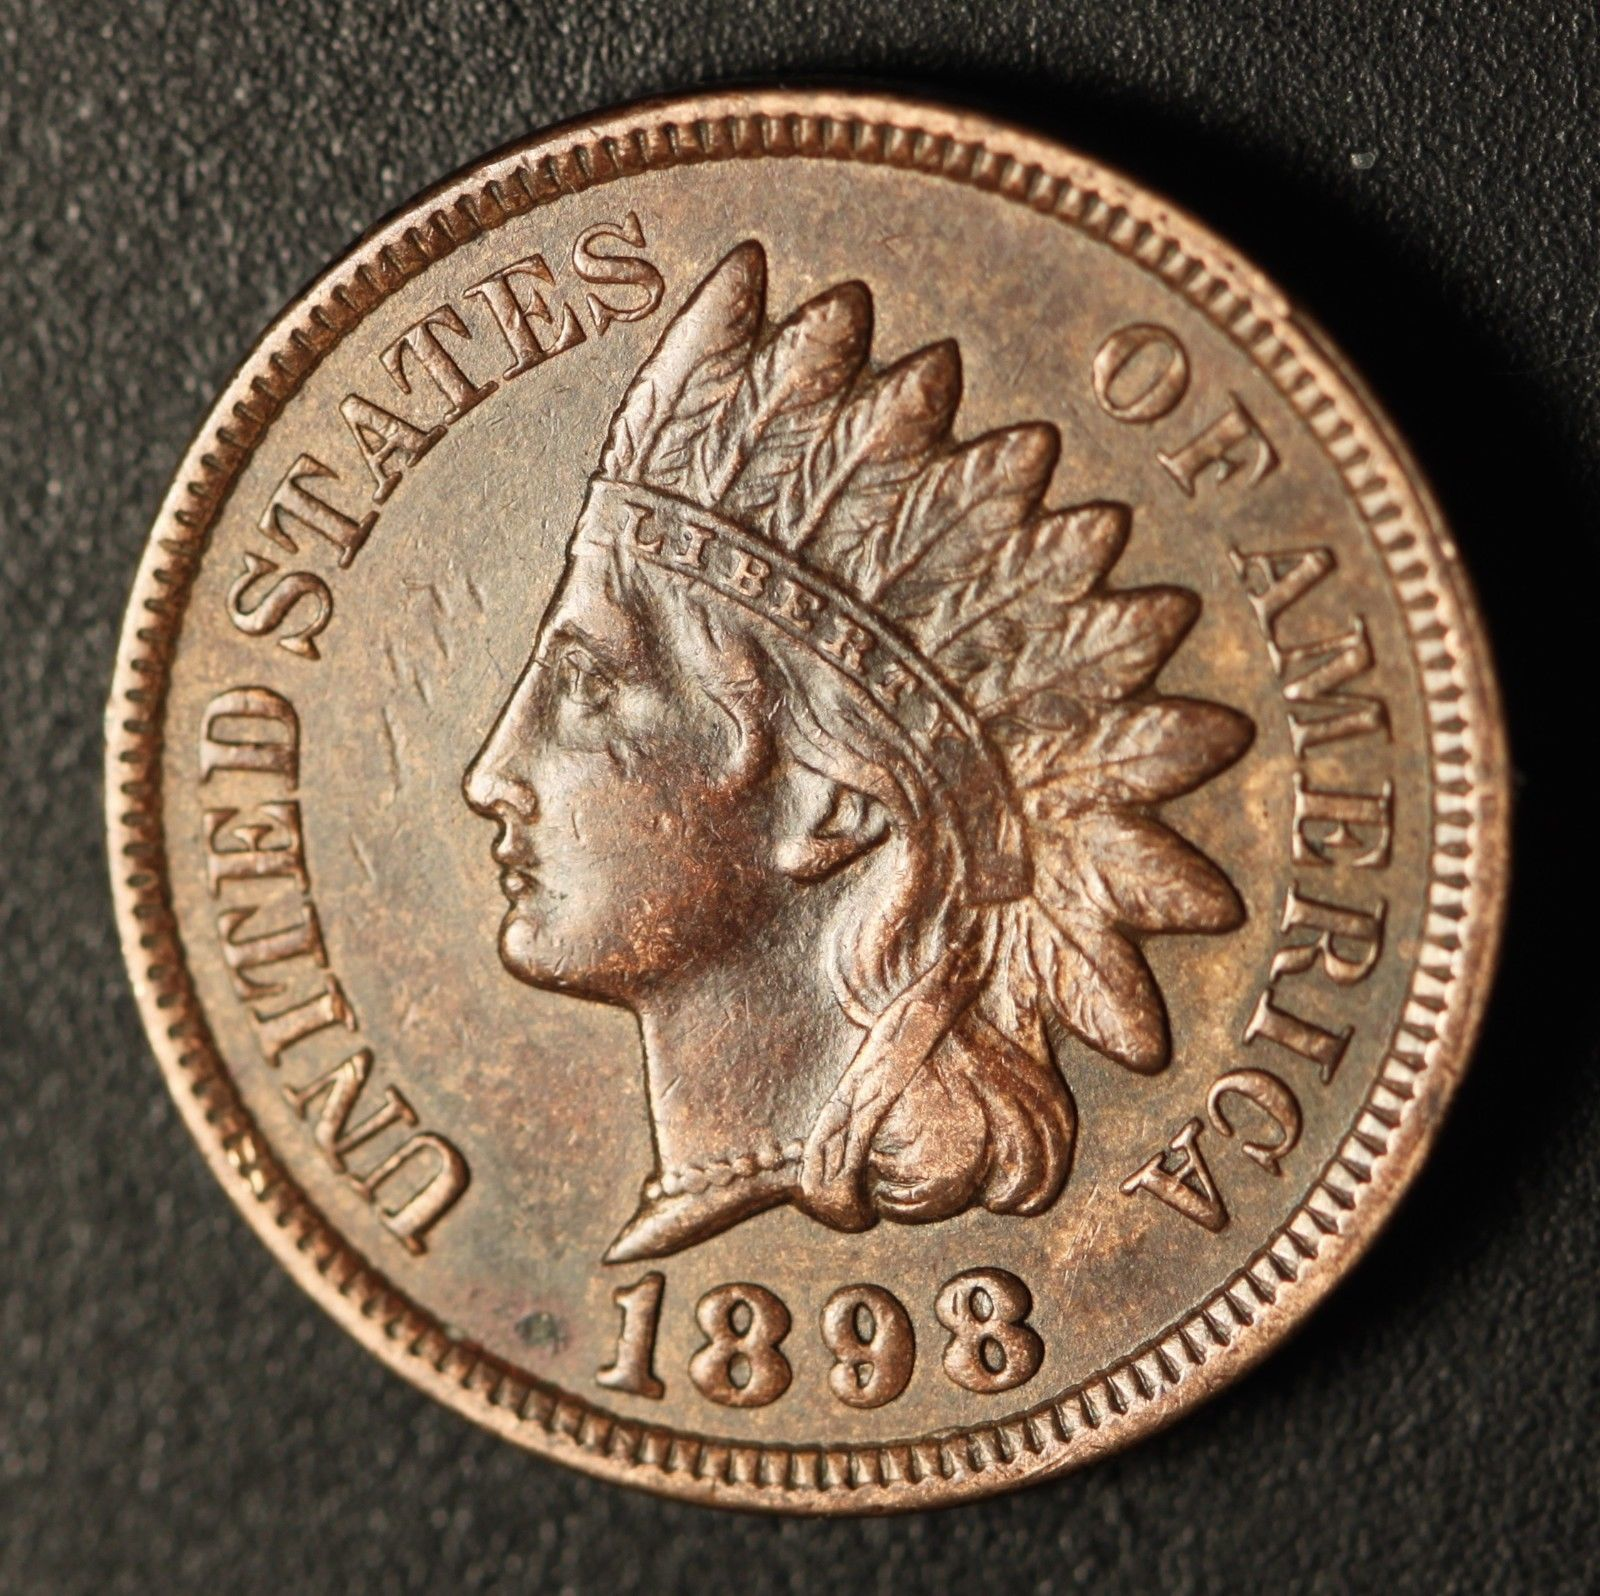 1898 MPD-004 - Indian Head Penny - Photo by Ed Nathanson